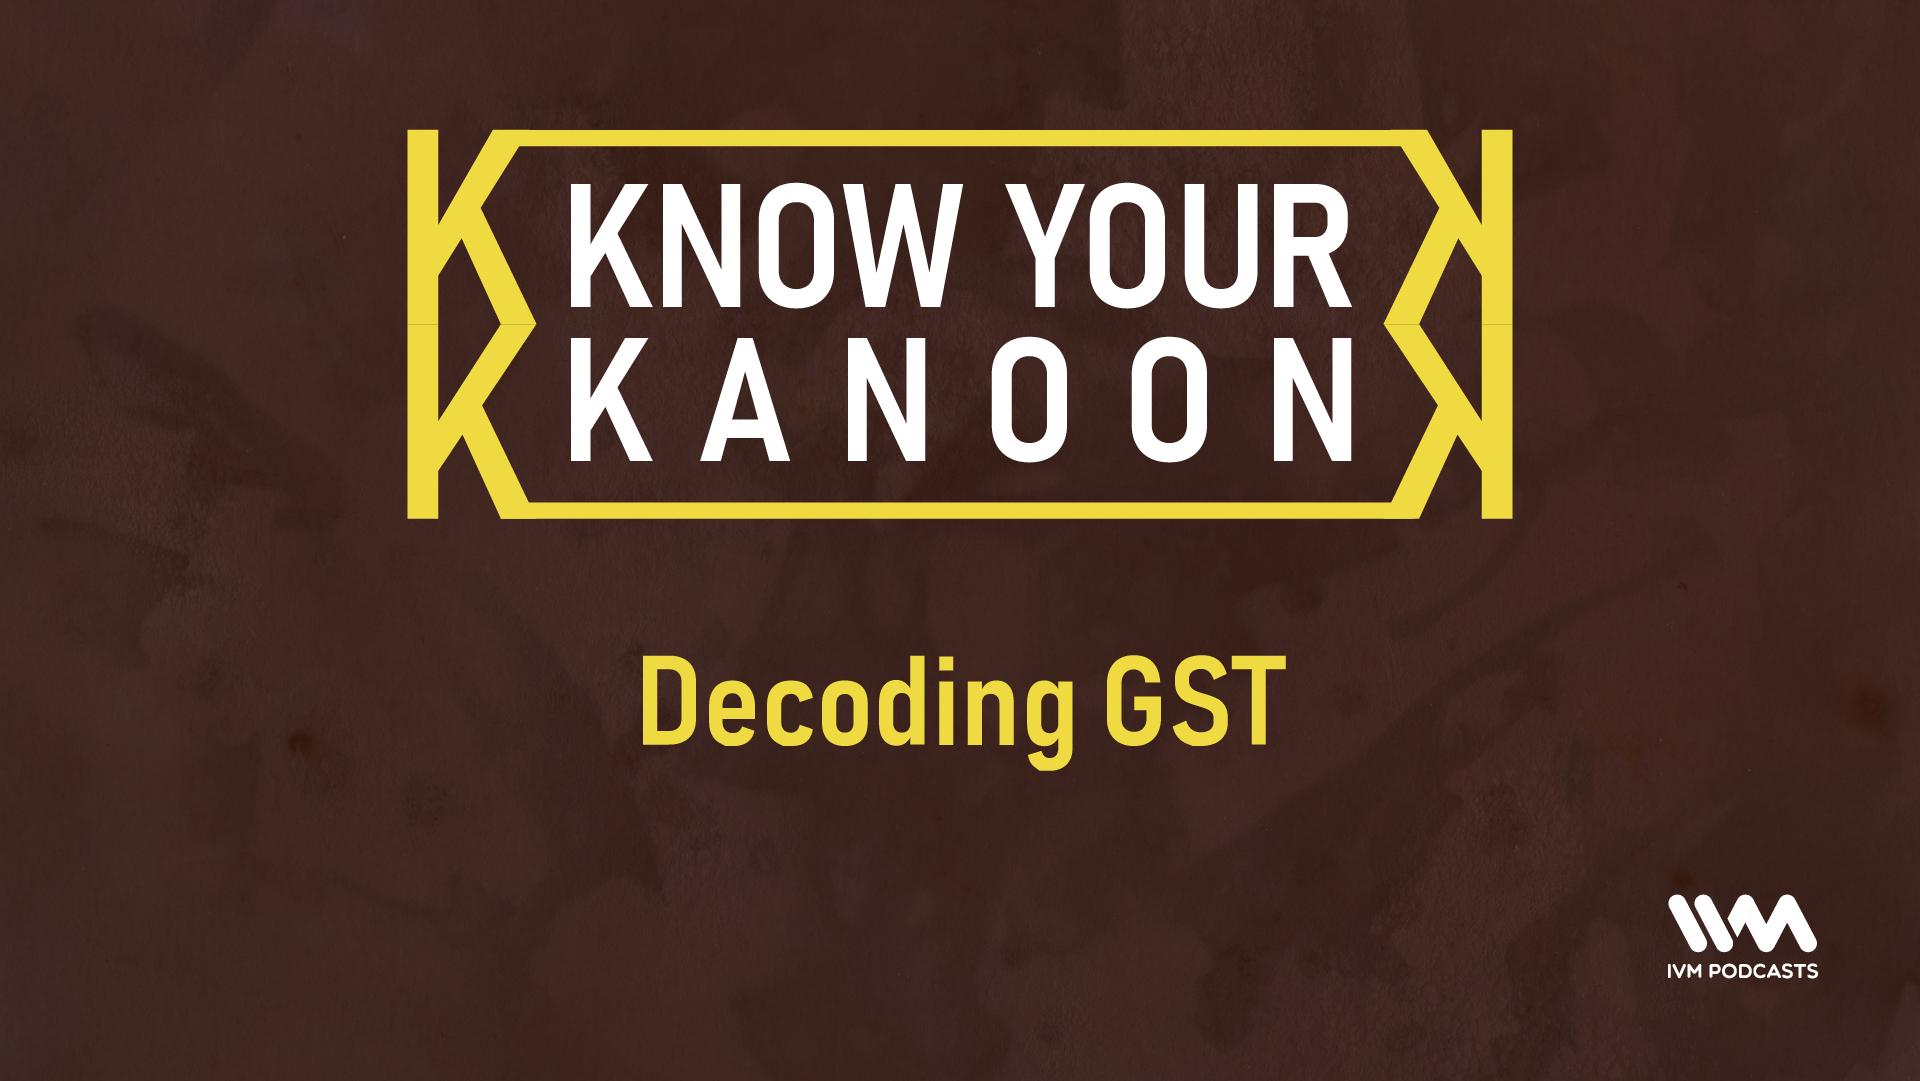 KnowYourKanoonEpisode30.png